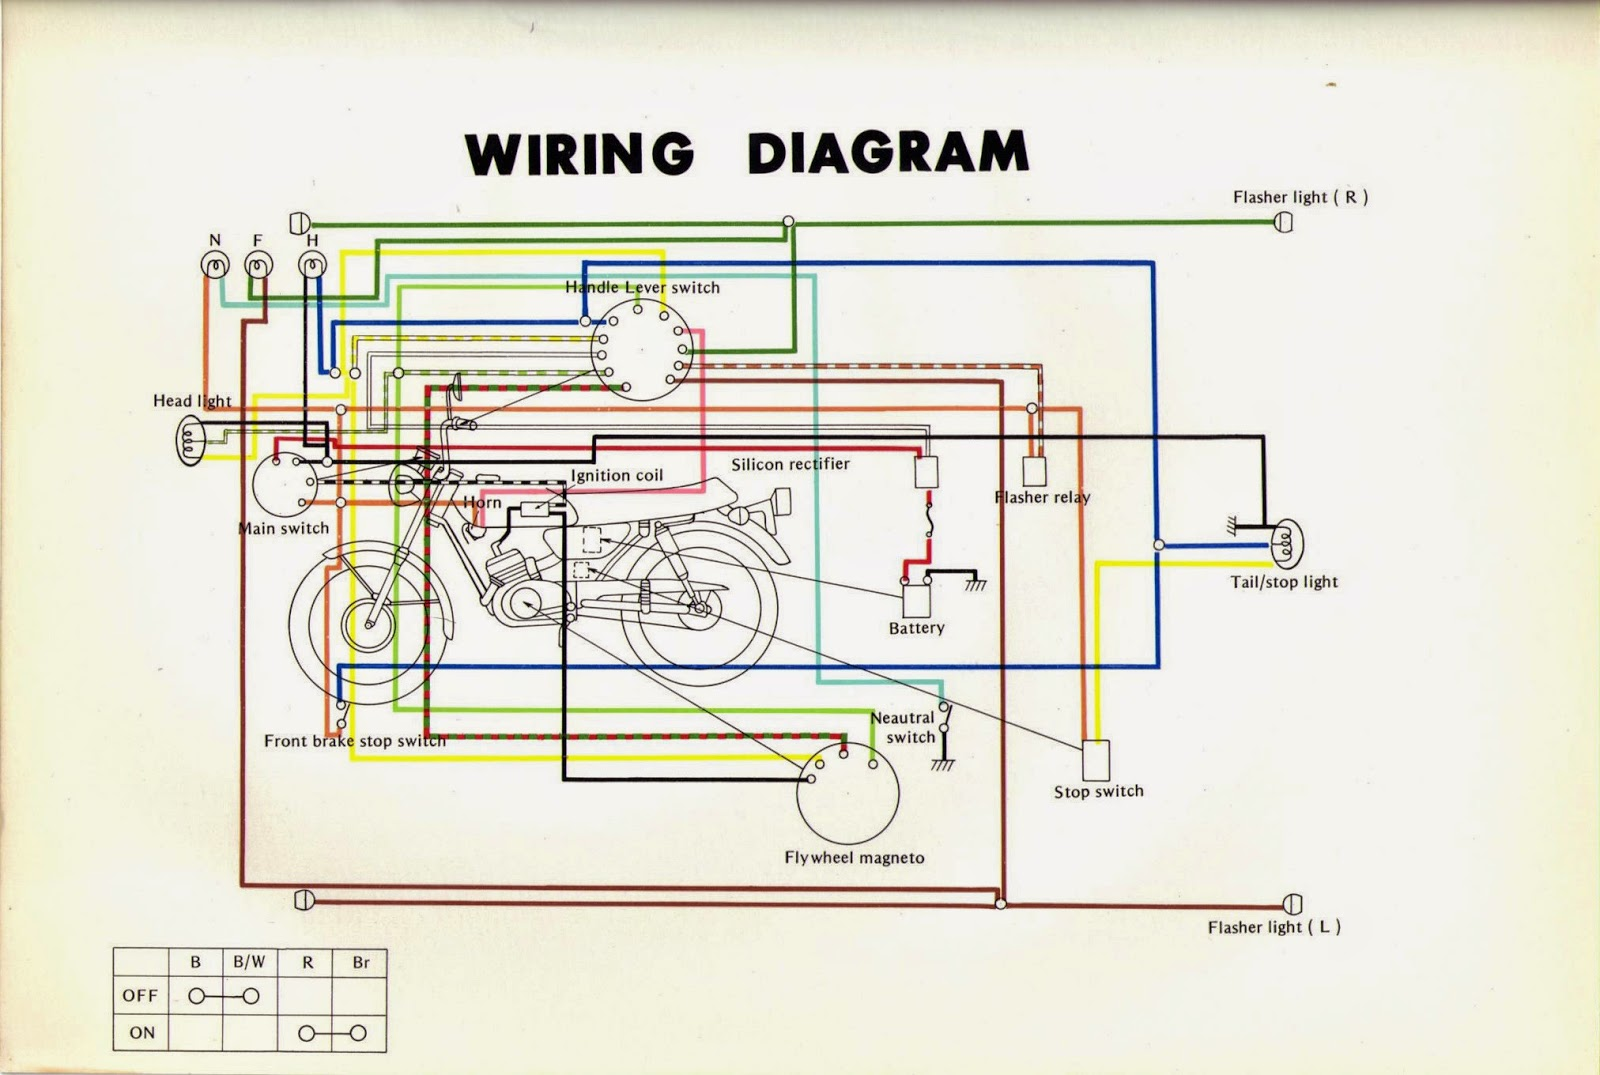 Yamaha service manual003 yamaha bolt wiring diagram ez go wiring diagram \u2022 wiring diagrams 1979 Yamaha It 400 Enduro at cos-gaming.co